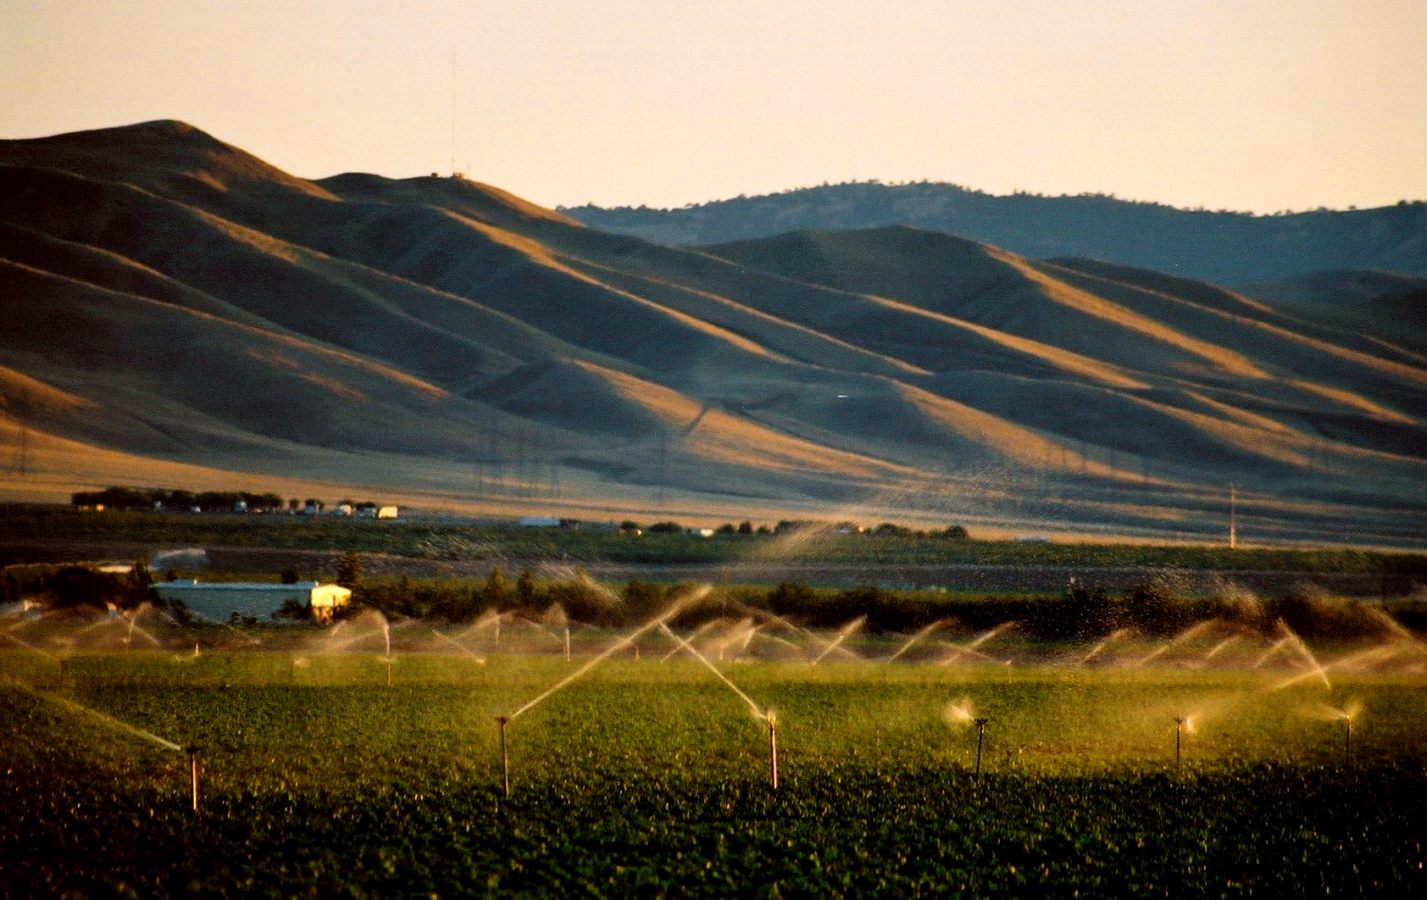 California must abandon 535,000 acres of prized farmland to meet water conservation goals, a new report finds. Credit: Flickr / Michael Patrick, February 2019